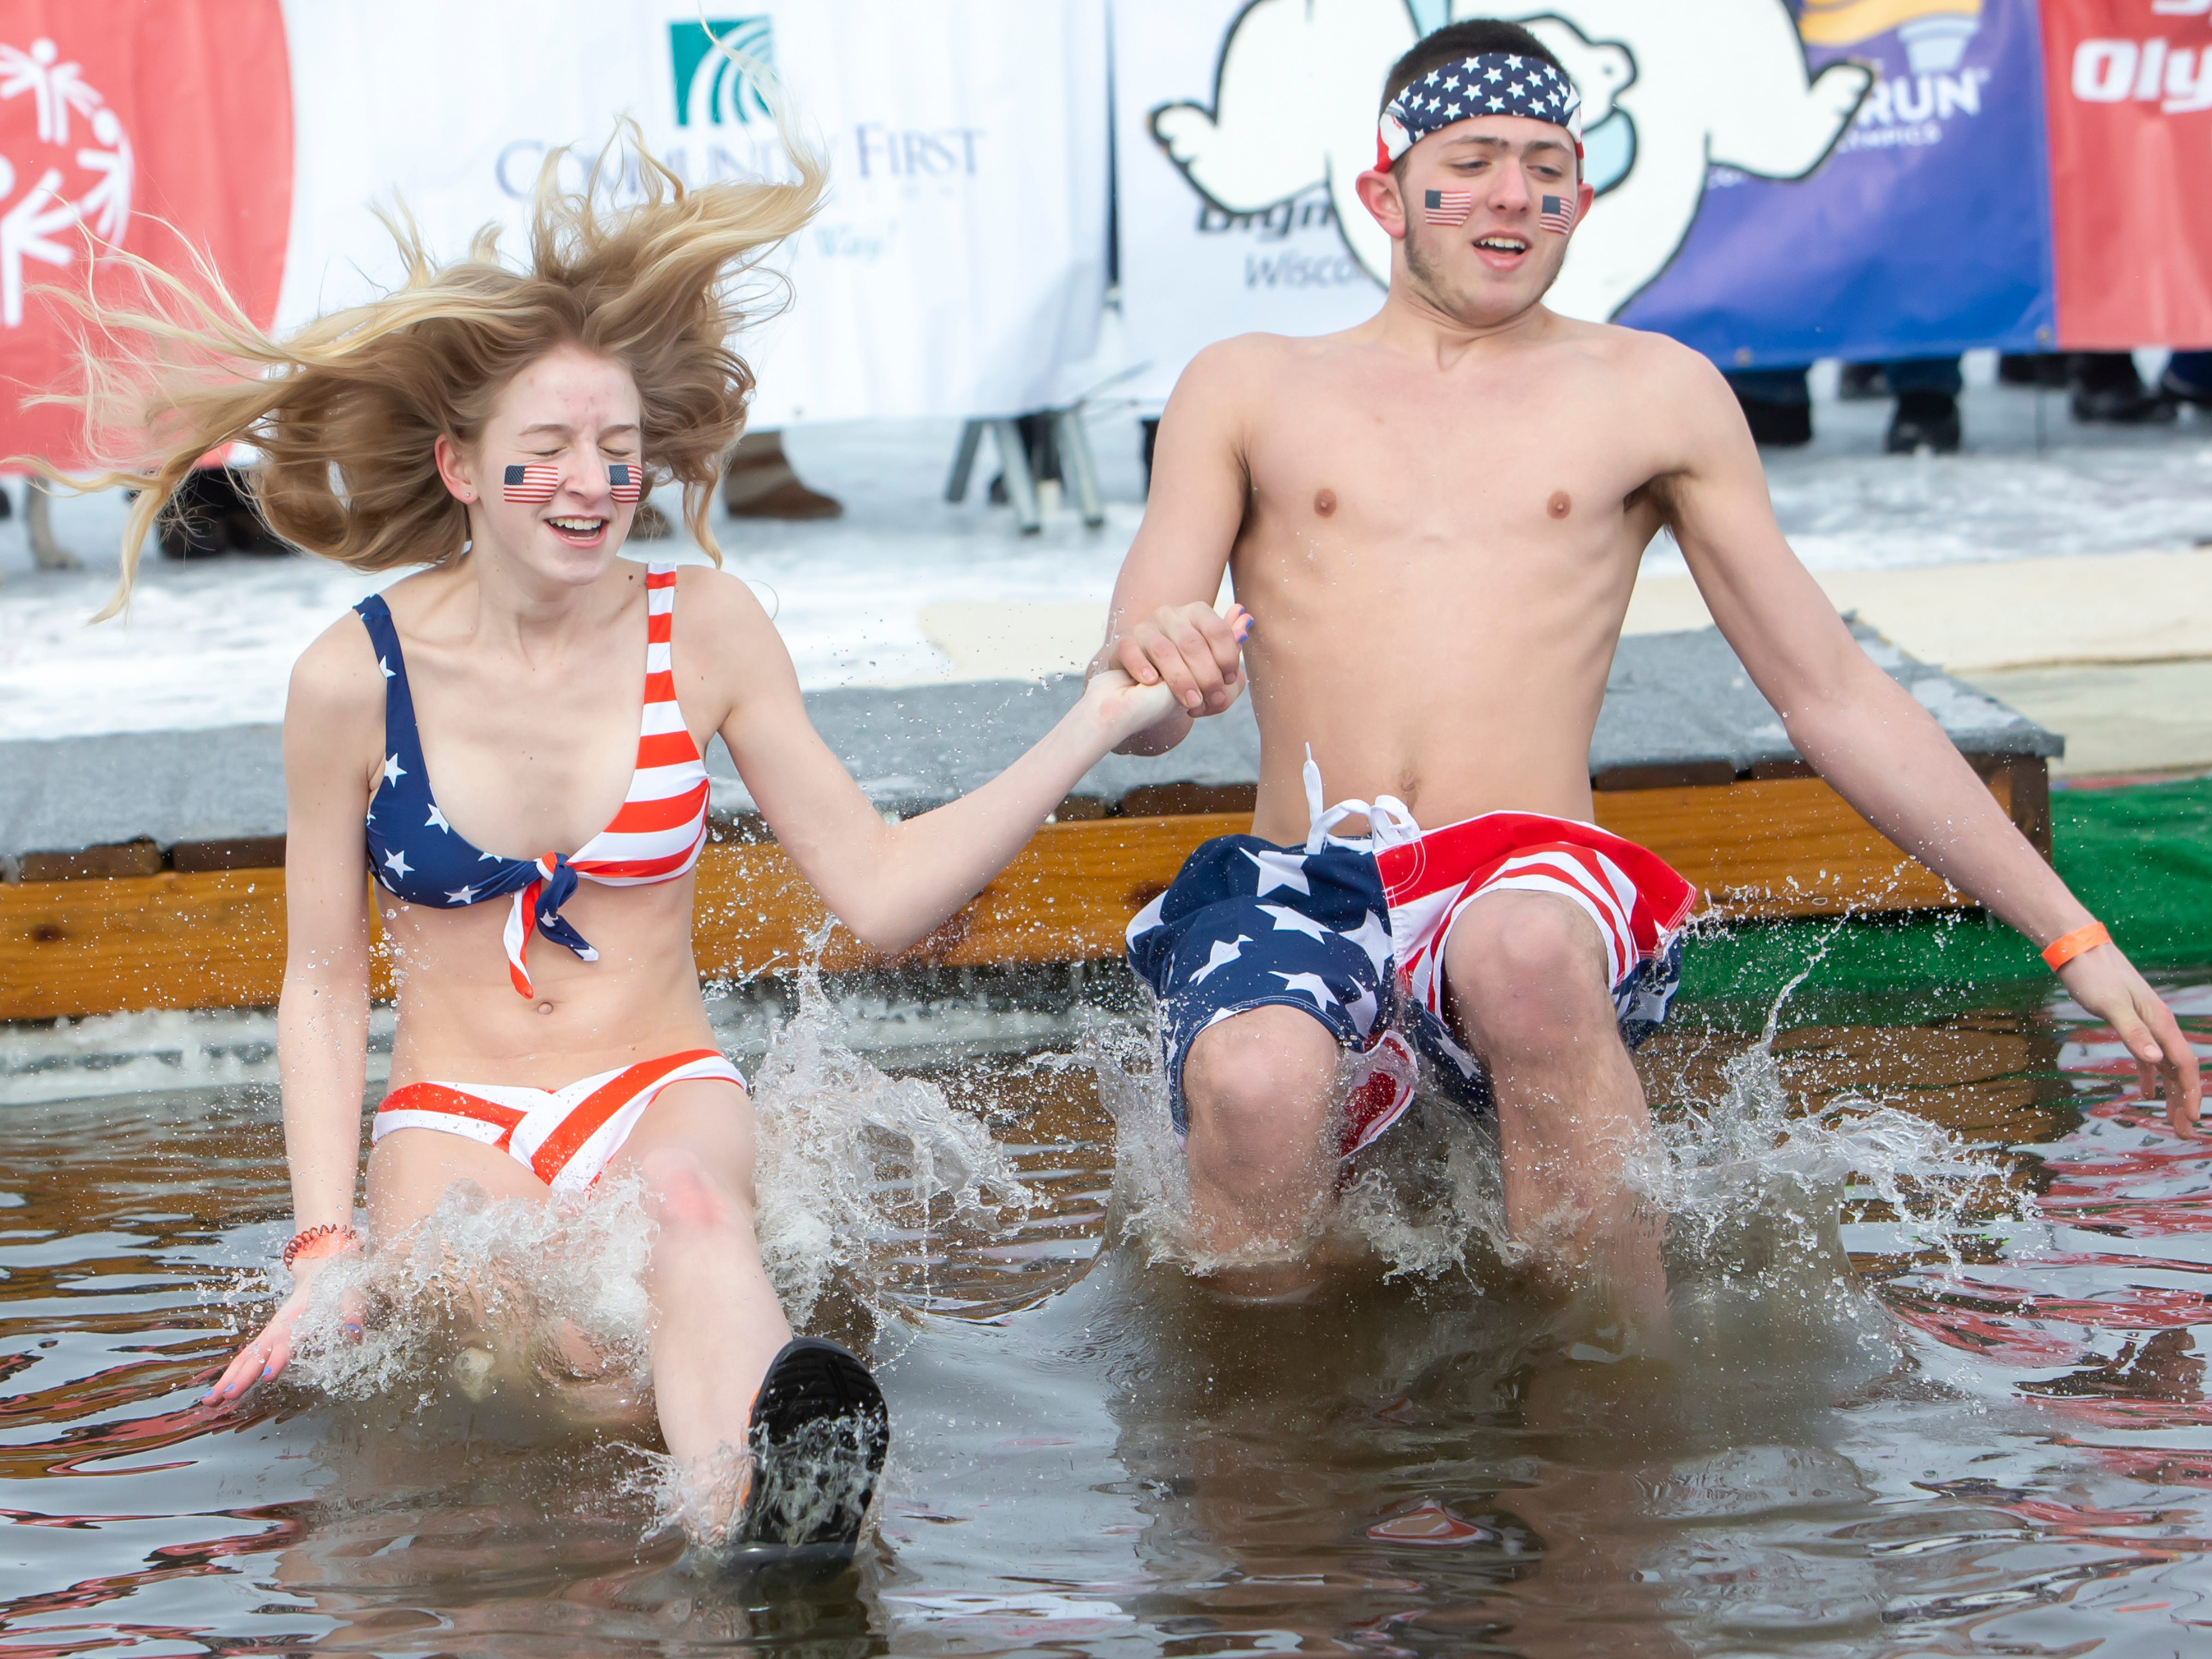 A patriotic couple plunge together during the Special Olympics Wisconsin Polar Plunge in Oshkosh, Wis., on Saturday, February 16, 2019, at Miller's Bay in Menominee Park.